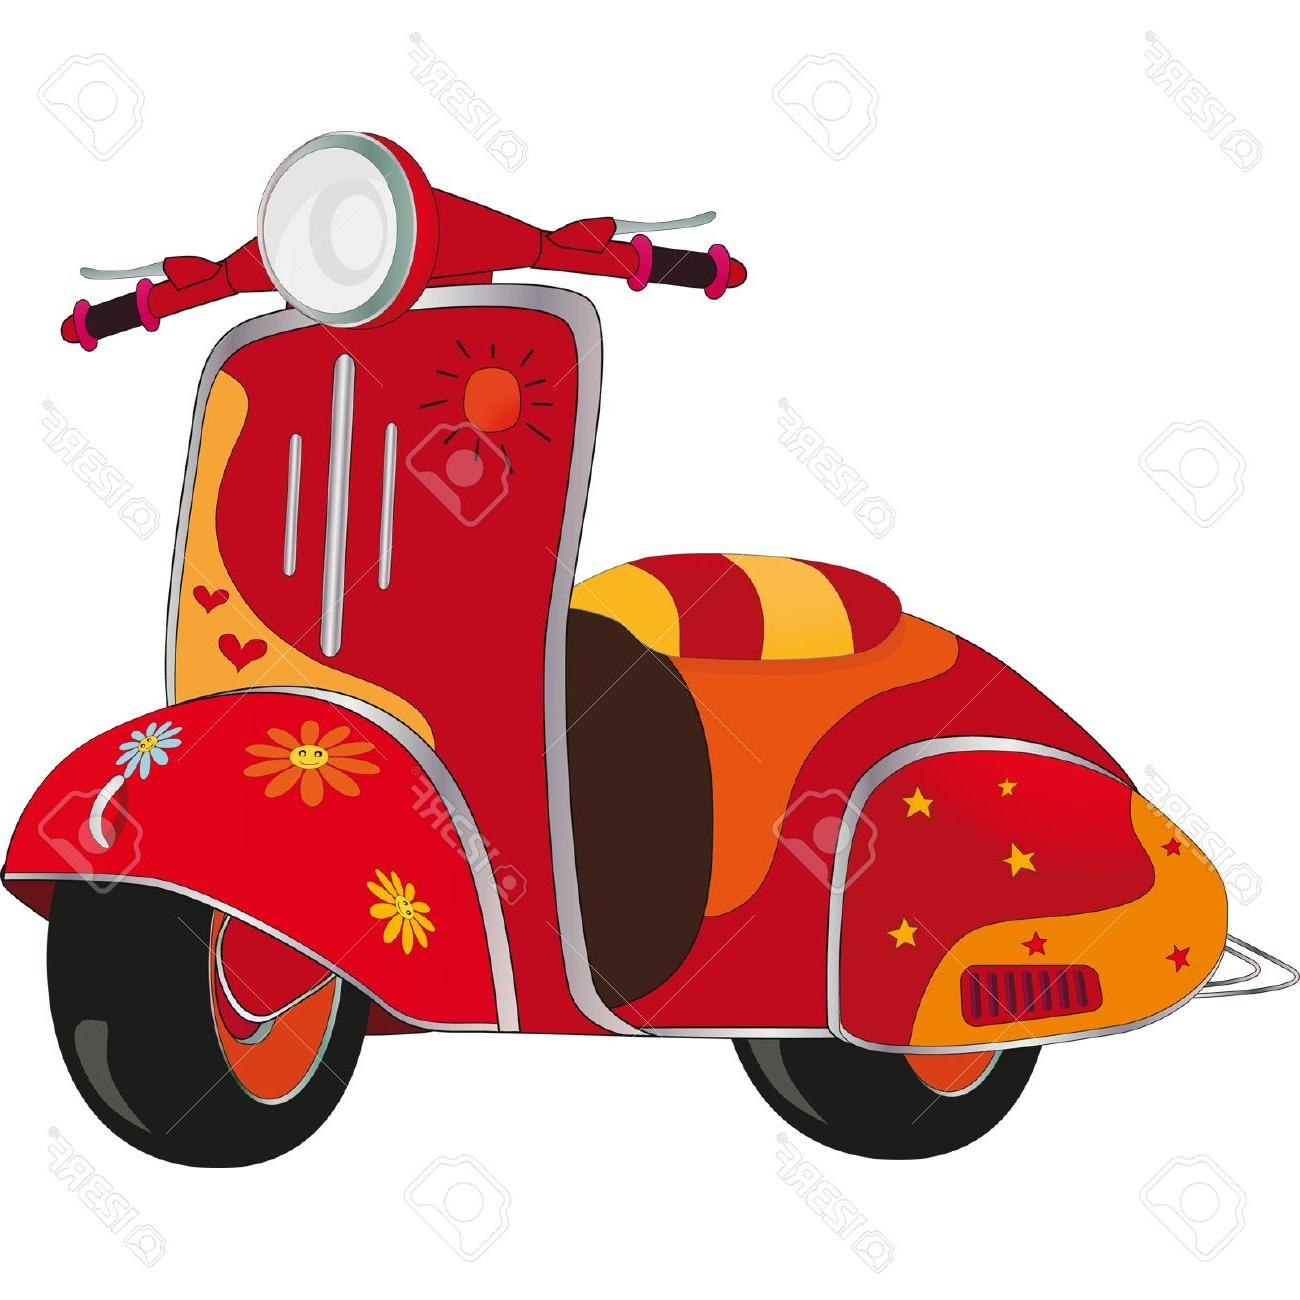 Scooter clipart images svg download Best Motor Scooter Clip Art File Free » Free Vector Art ... svg download